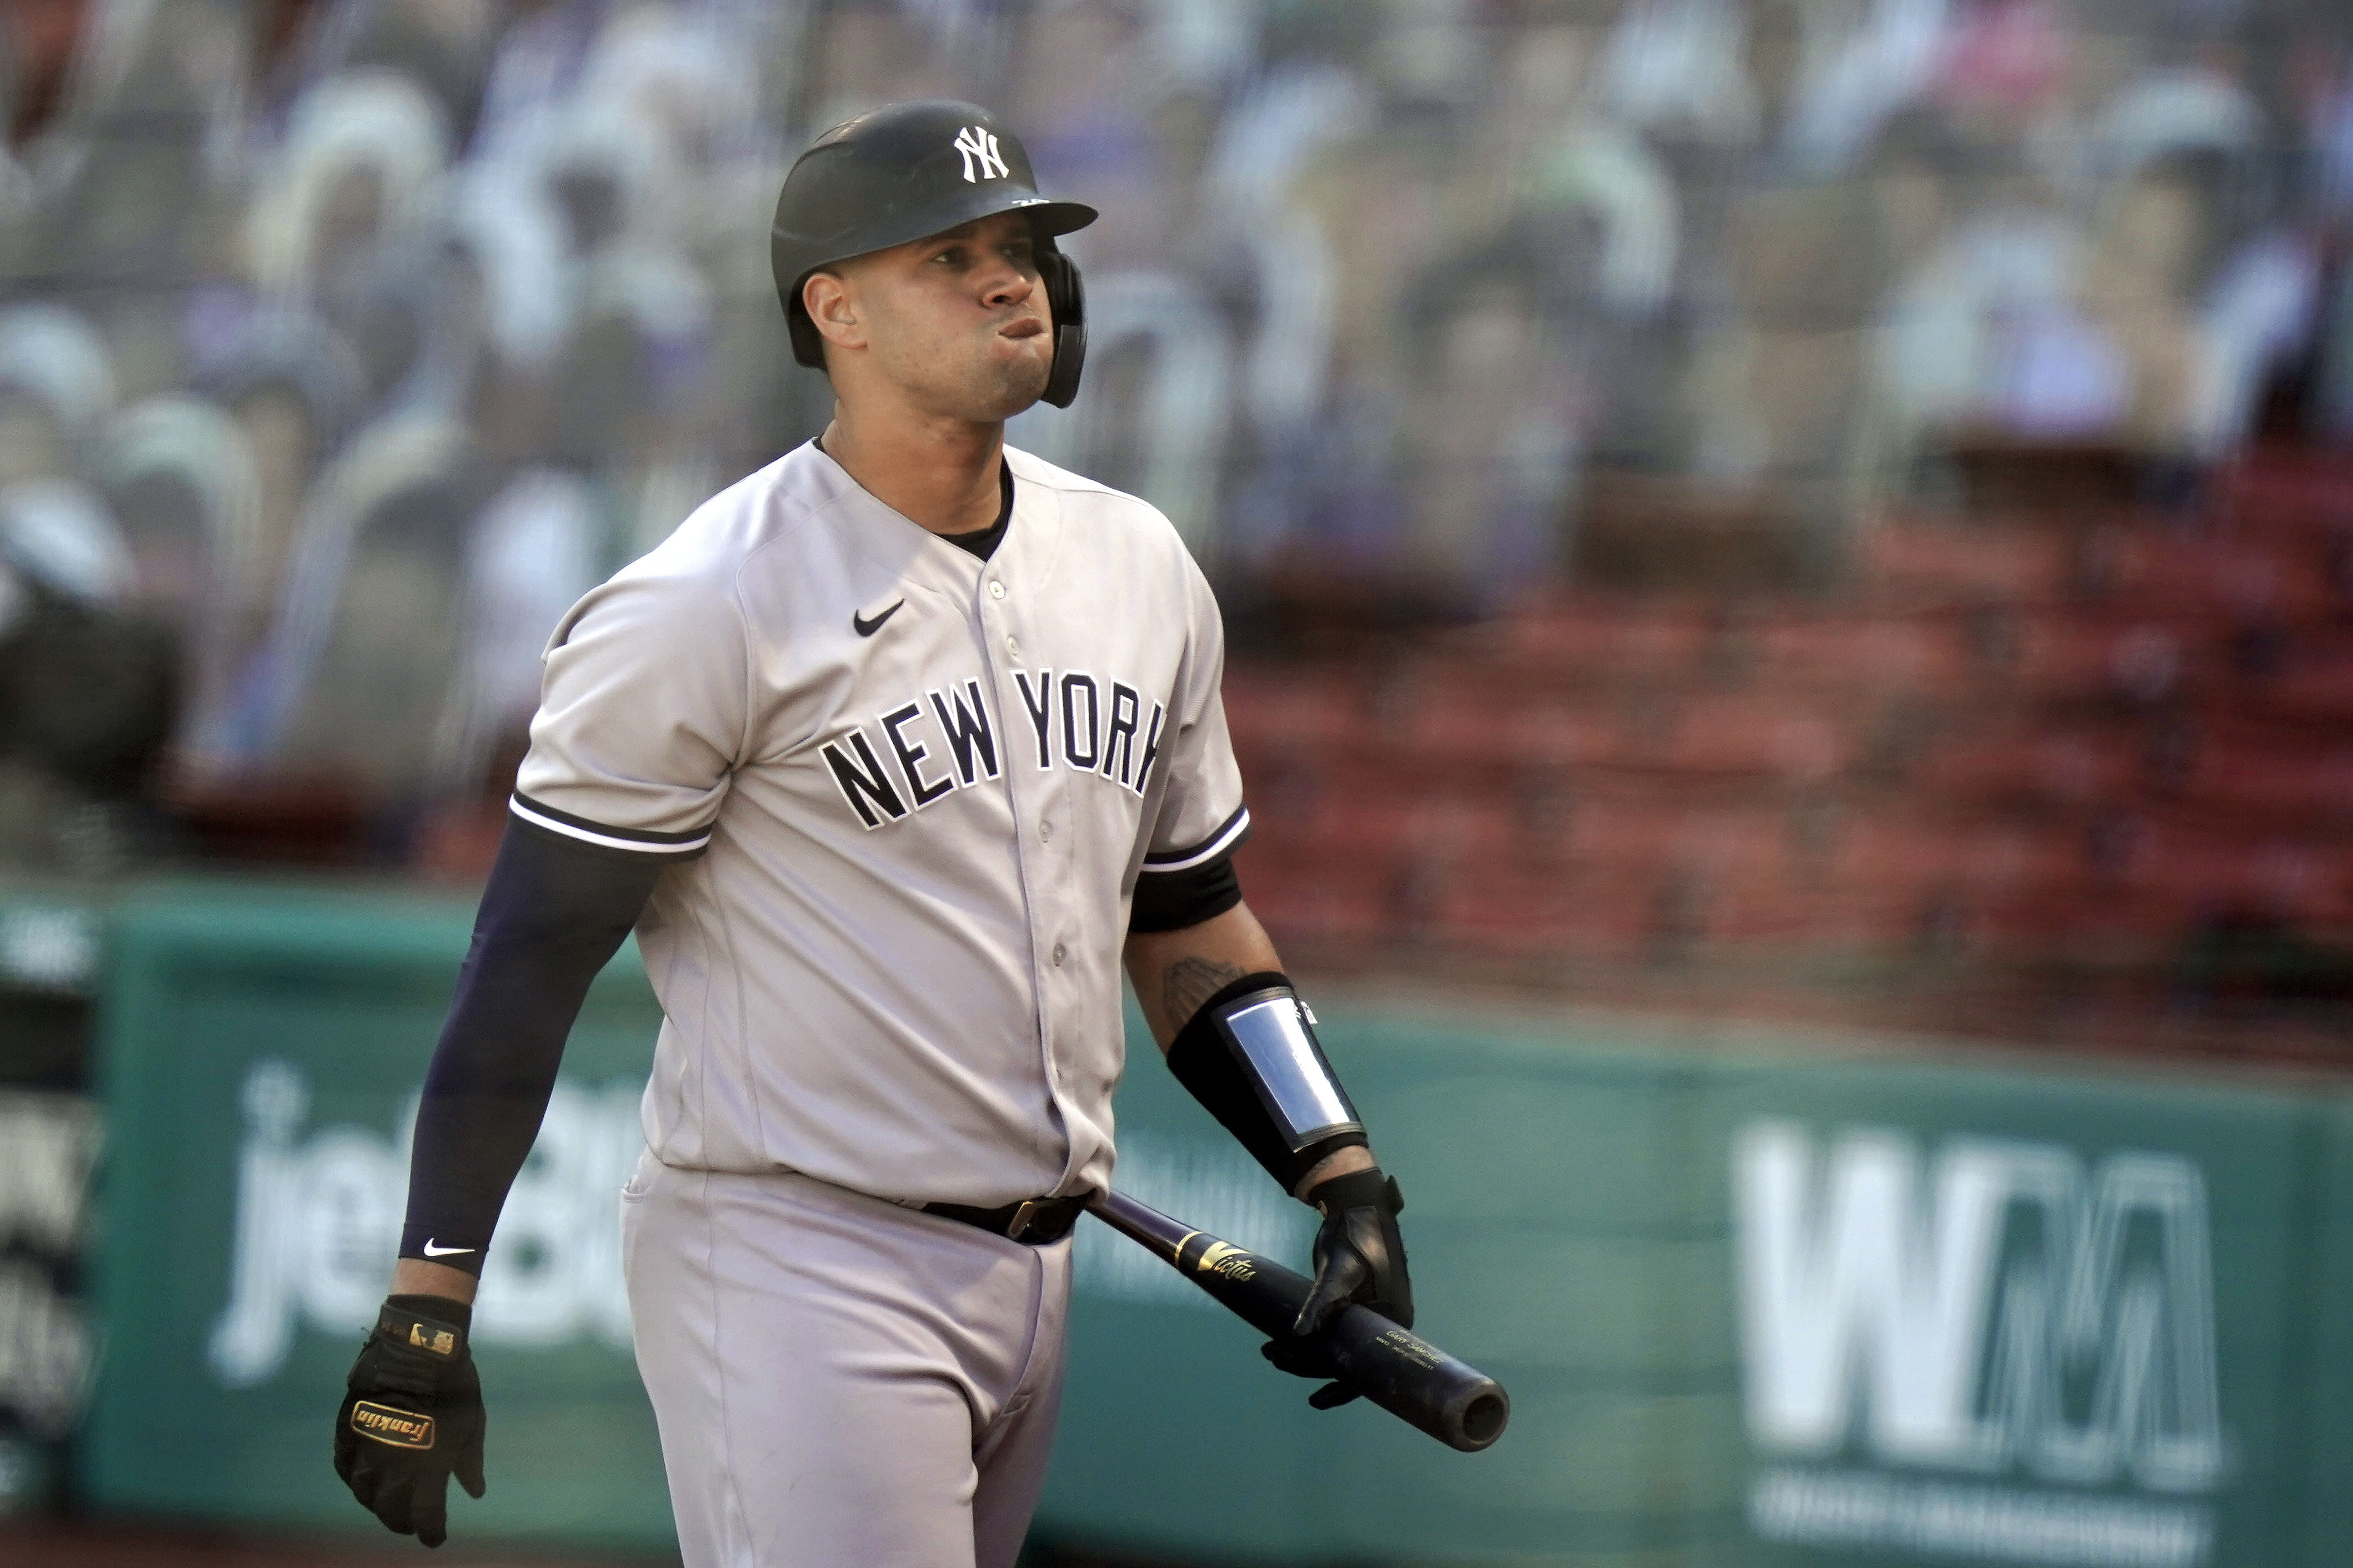 New York Yankees' Gary Sanchez reacts after he struck out swinging in the fifth inning of a baseball game against the Boston Red Sox, Sunday, Sept. 20, 2020, in Boston. (AP Photo/Steven Senne)